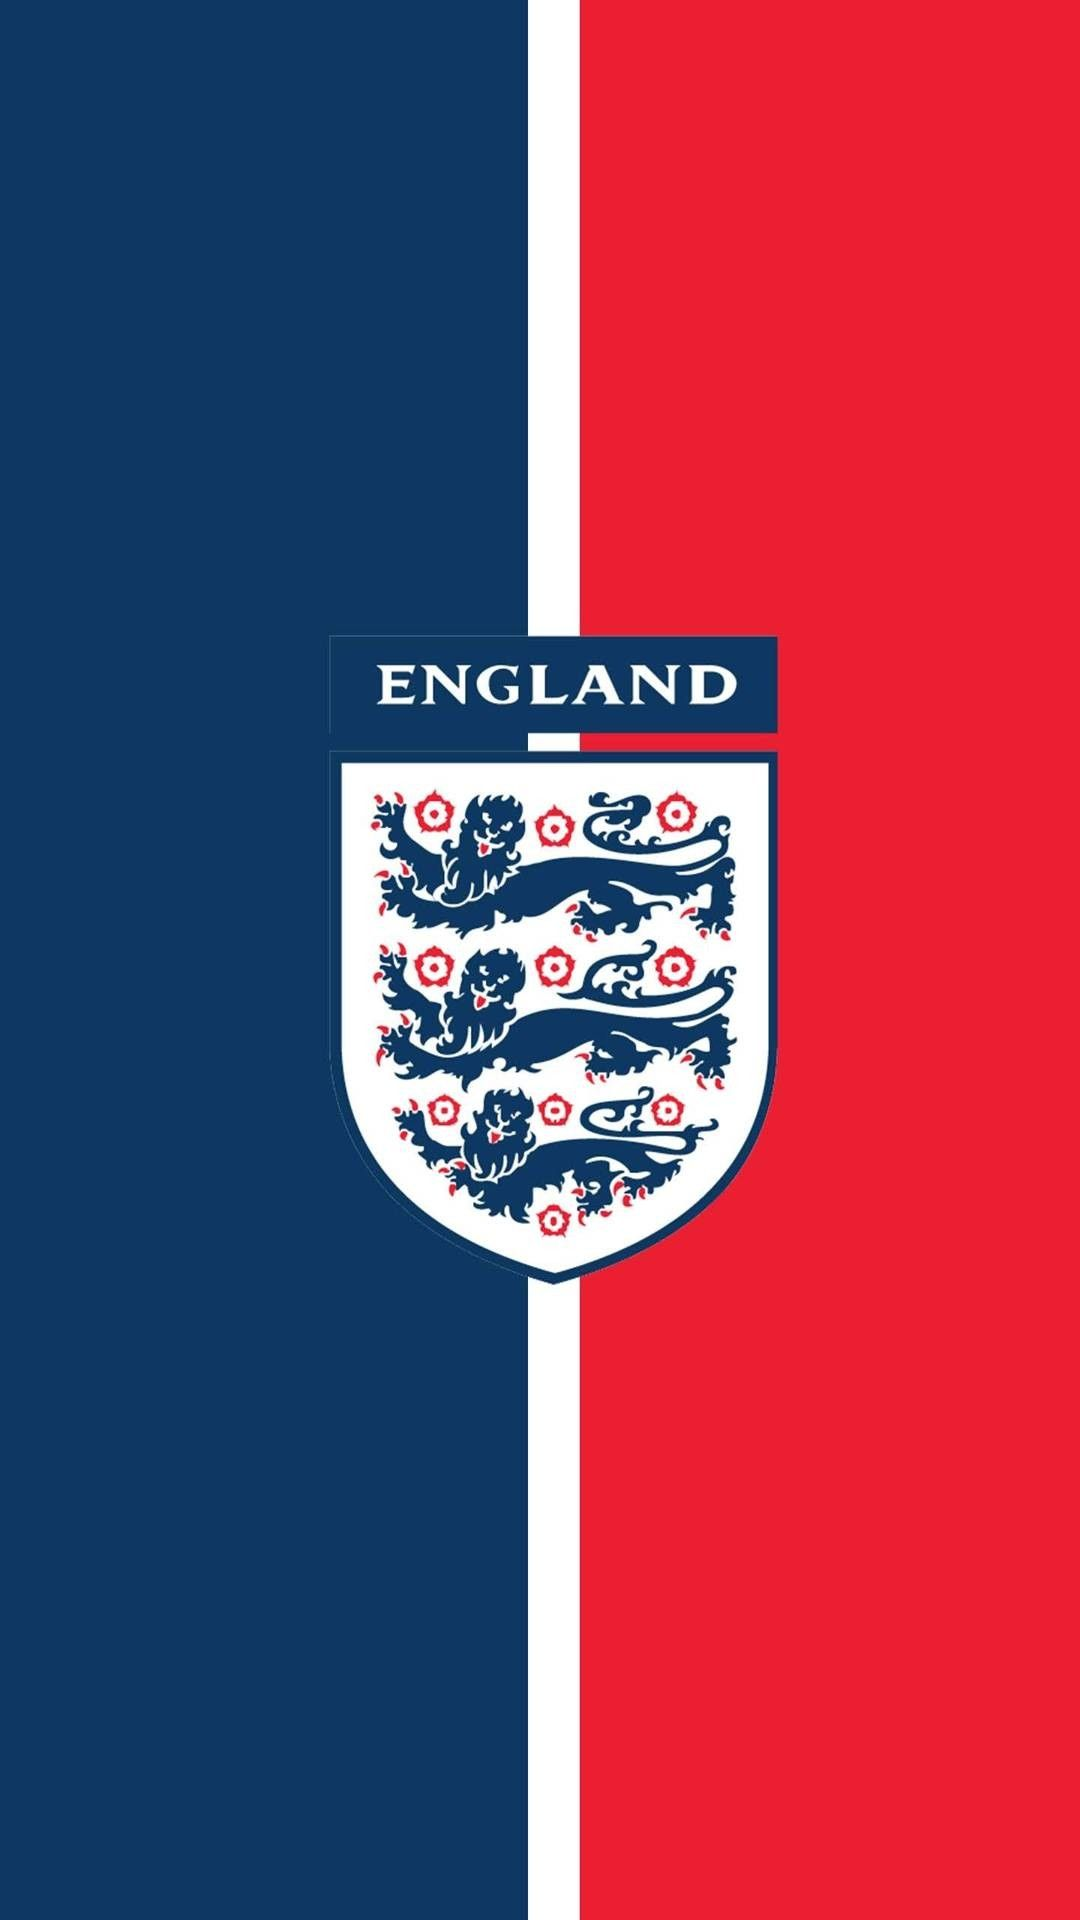 England Wallpaper In 2020 Team Wallpaper England Football Team England National Football Team